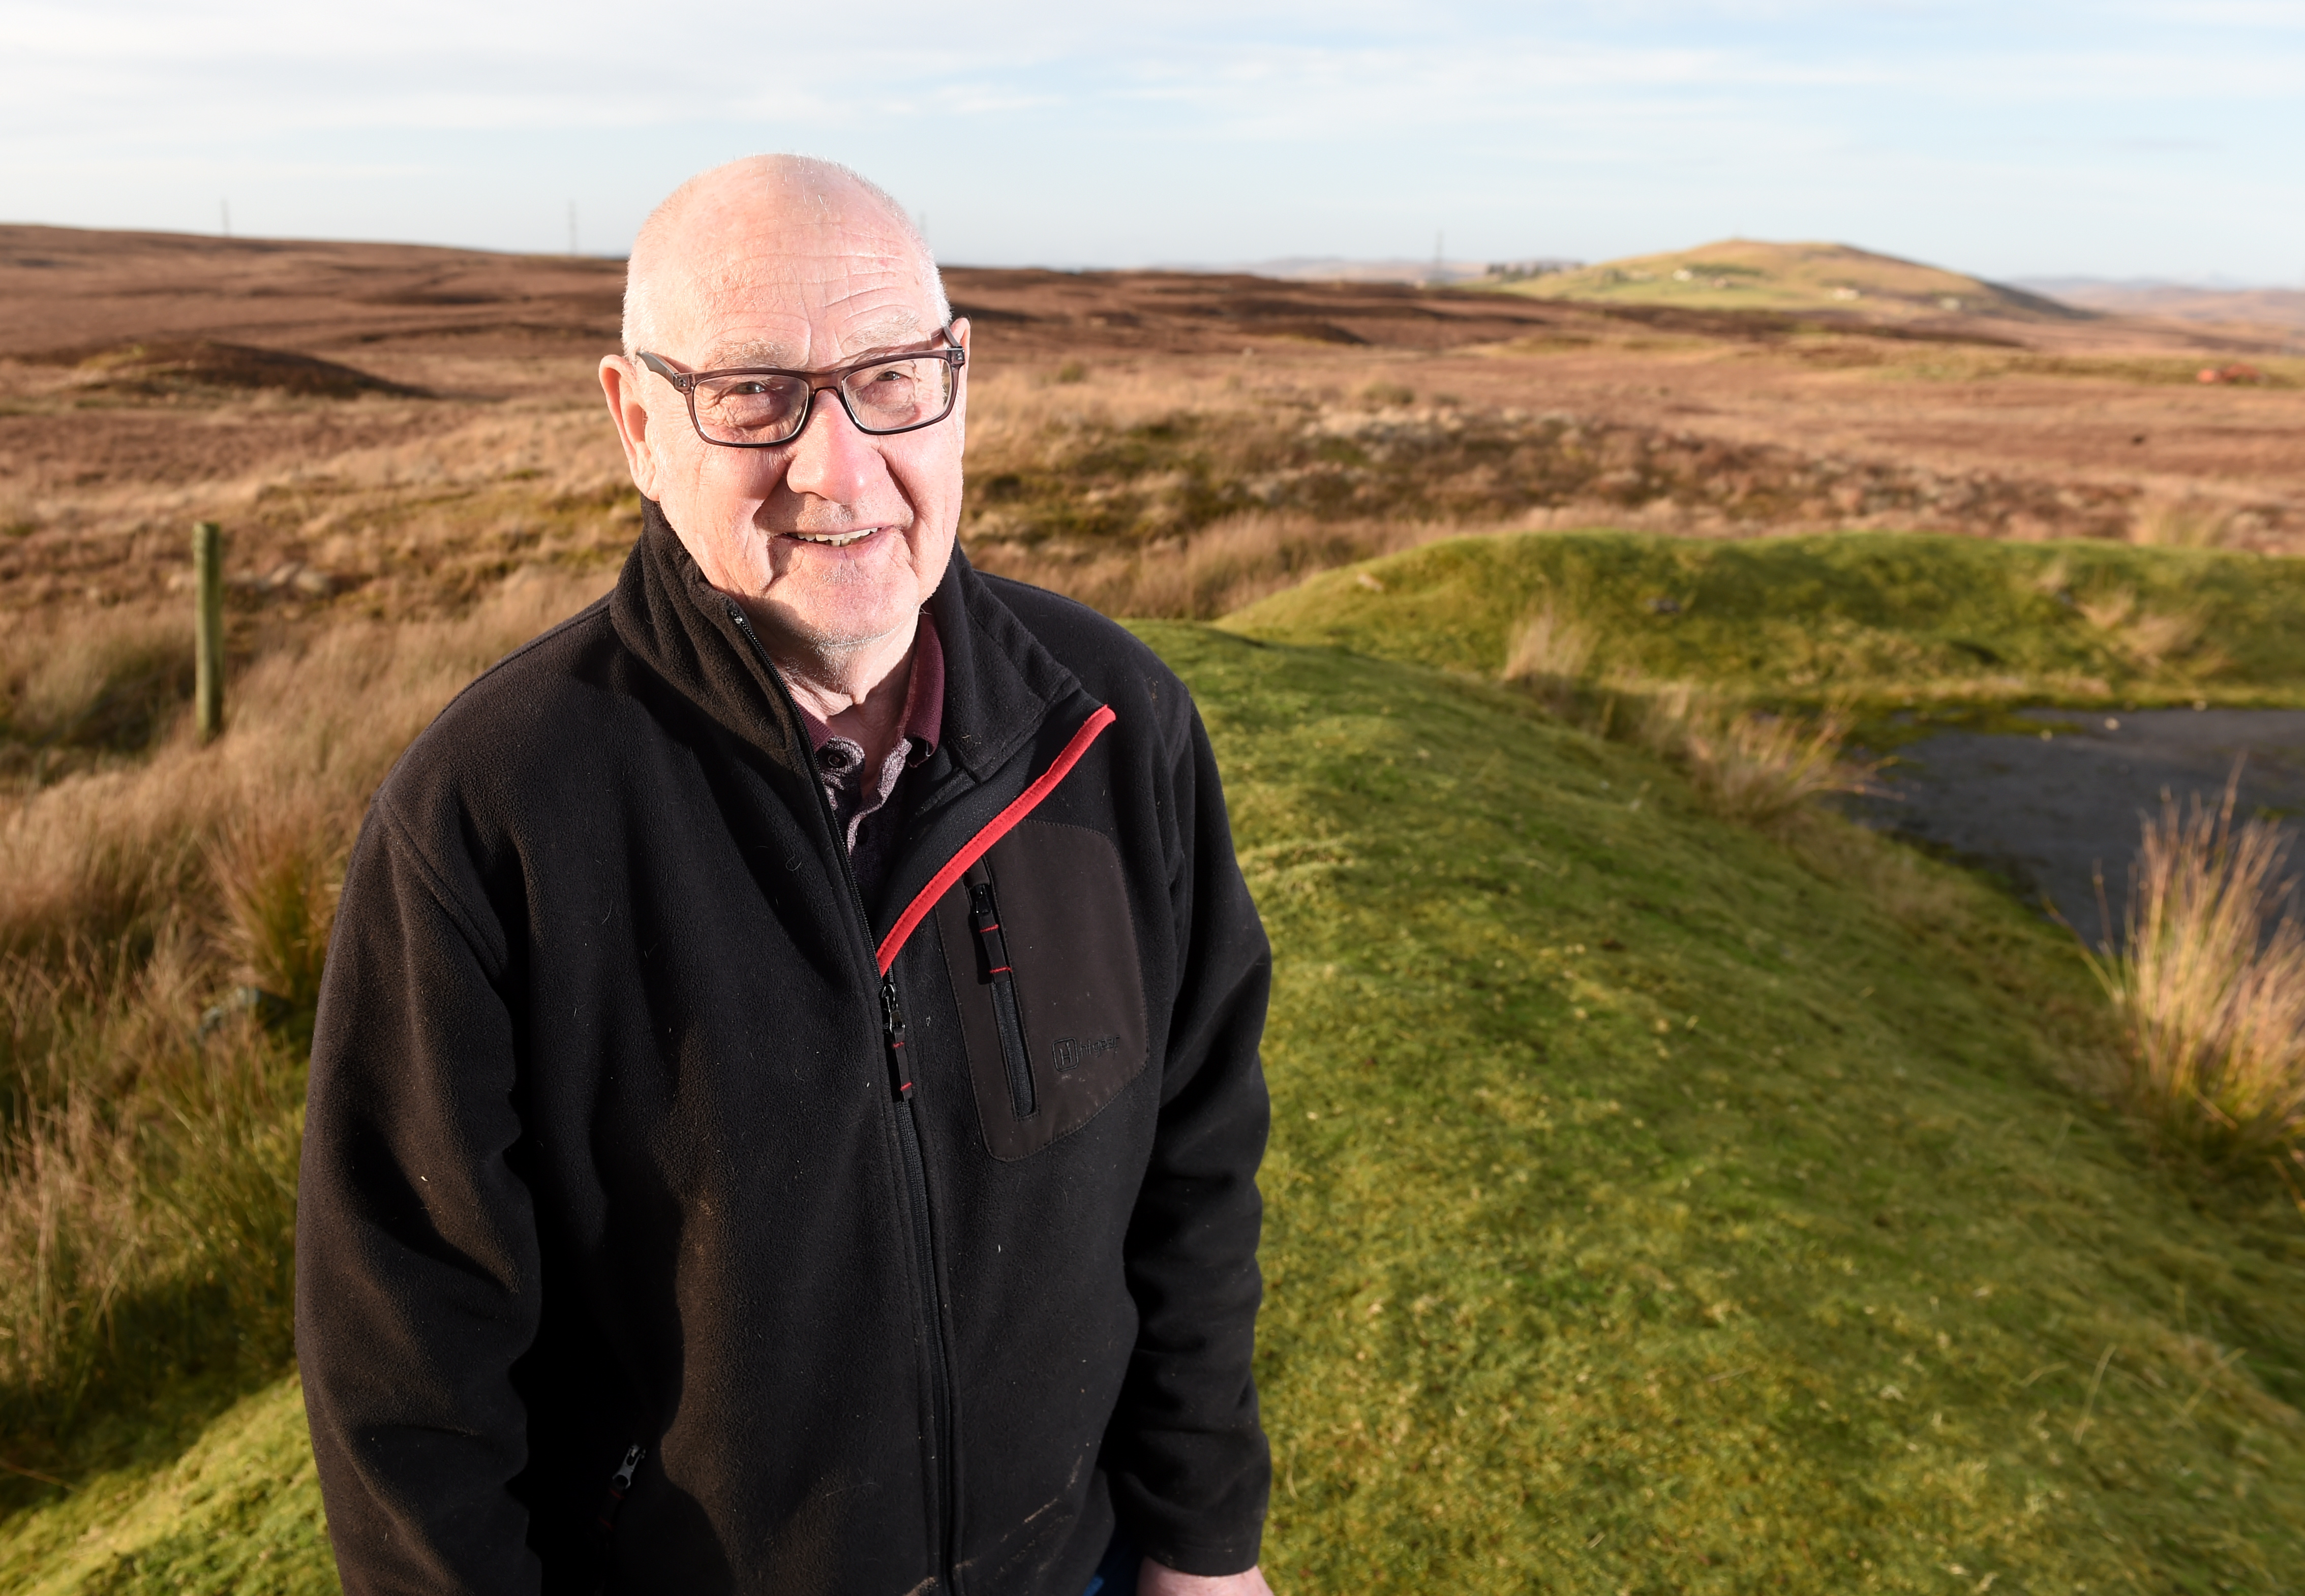 """Michael O'Reilly of Inchomney, Rogart in Sutherland has hits out at the latest proposed development in Rogart fearing village will become """"encircled"""" by wind farms. Picture by Sandy McCook"""